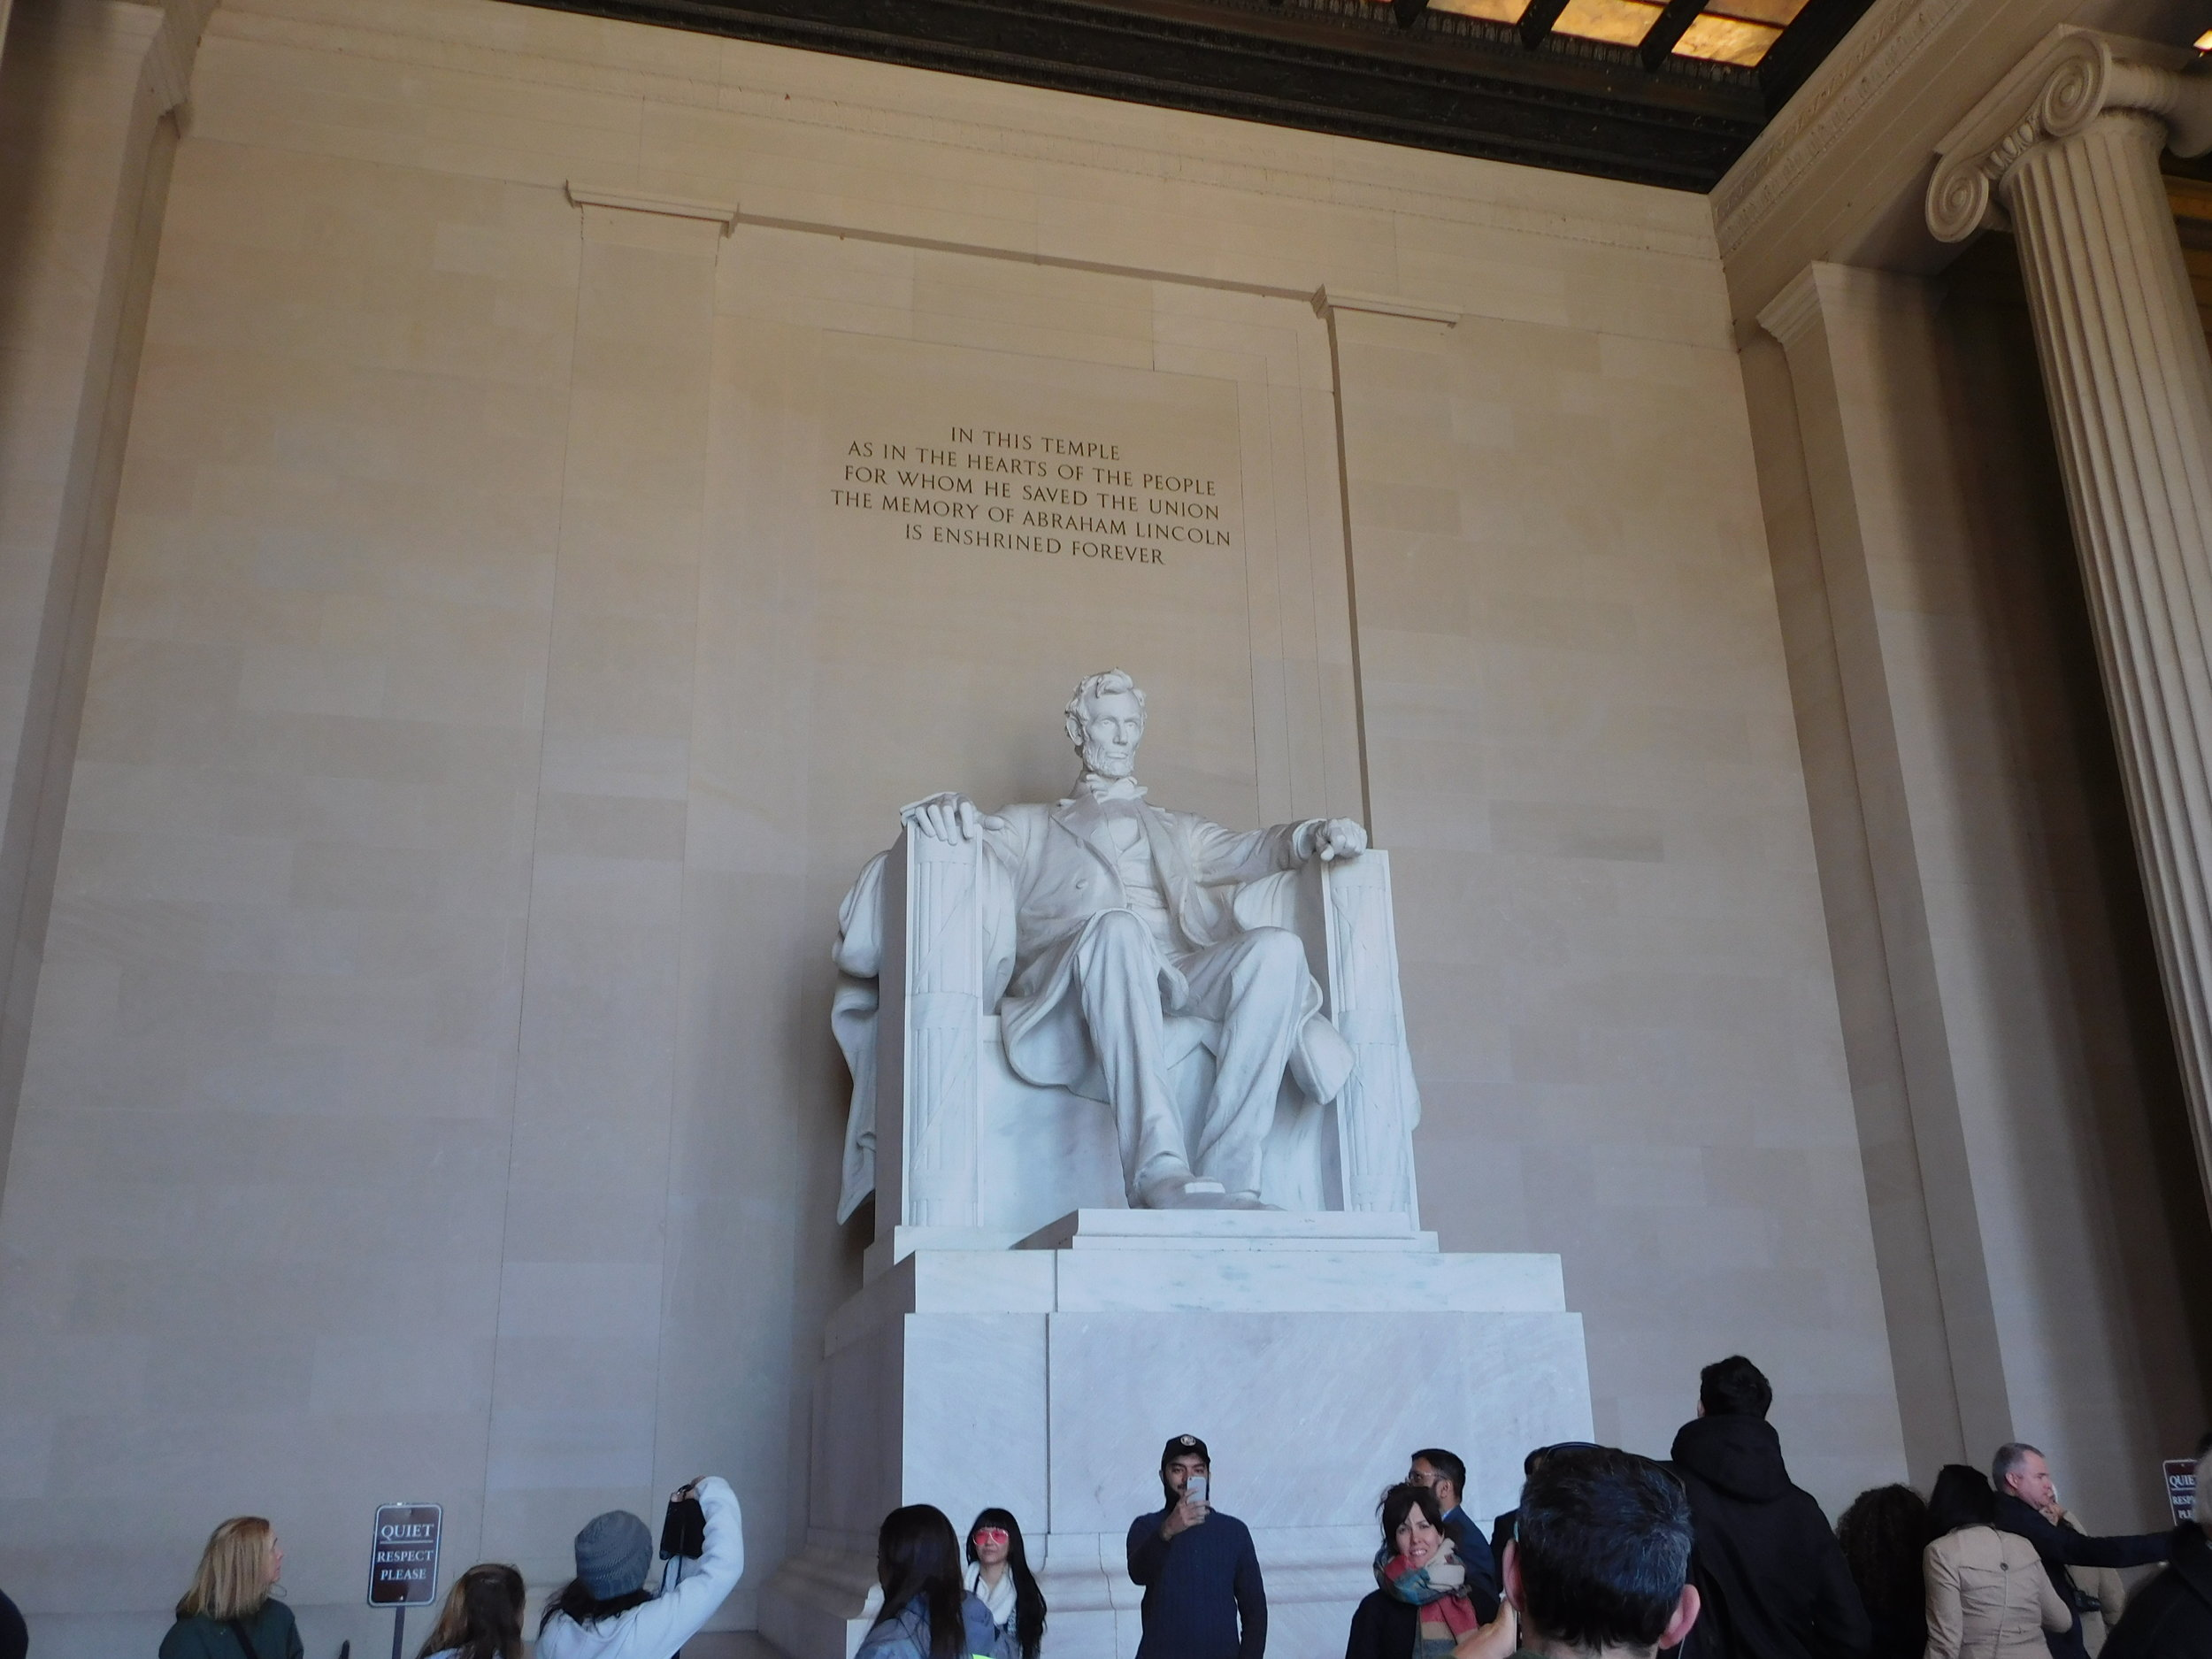 Group trip to the Lincoln memorial!